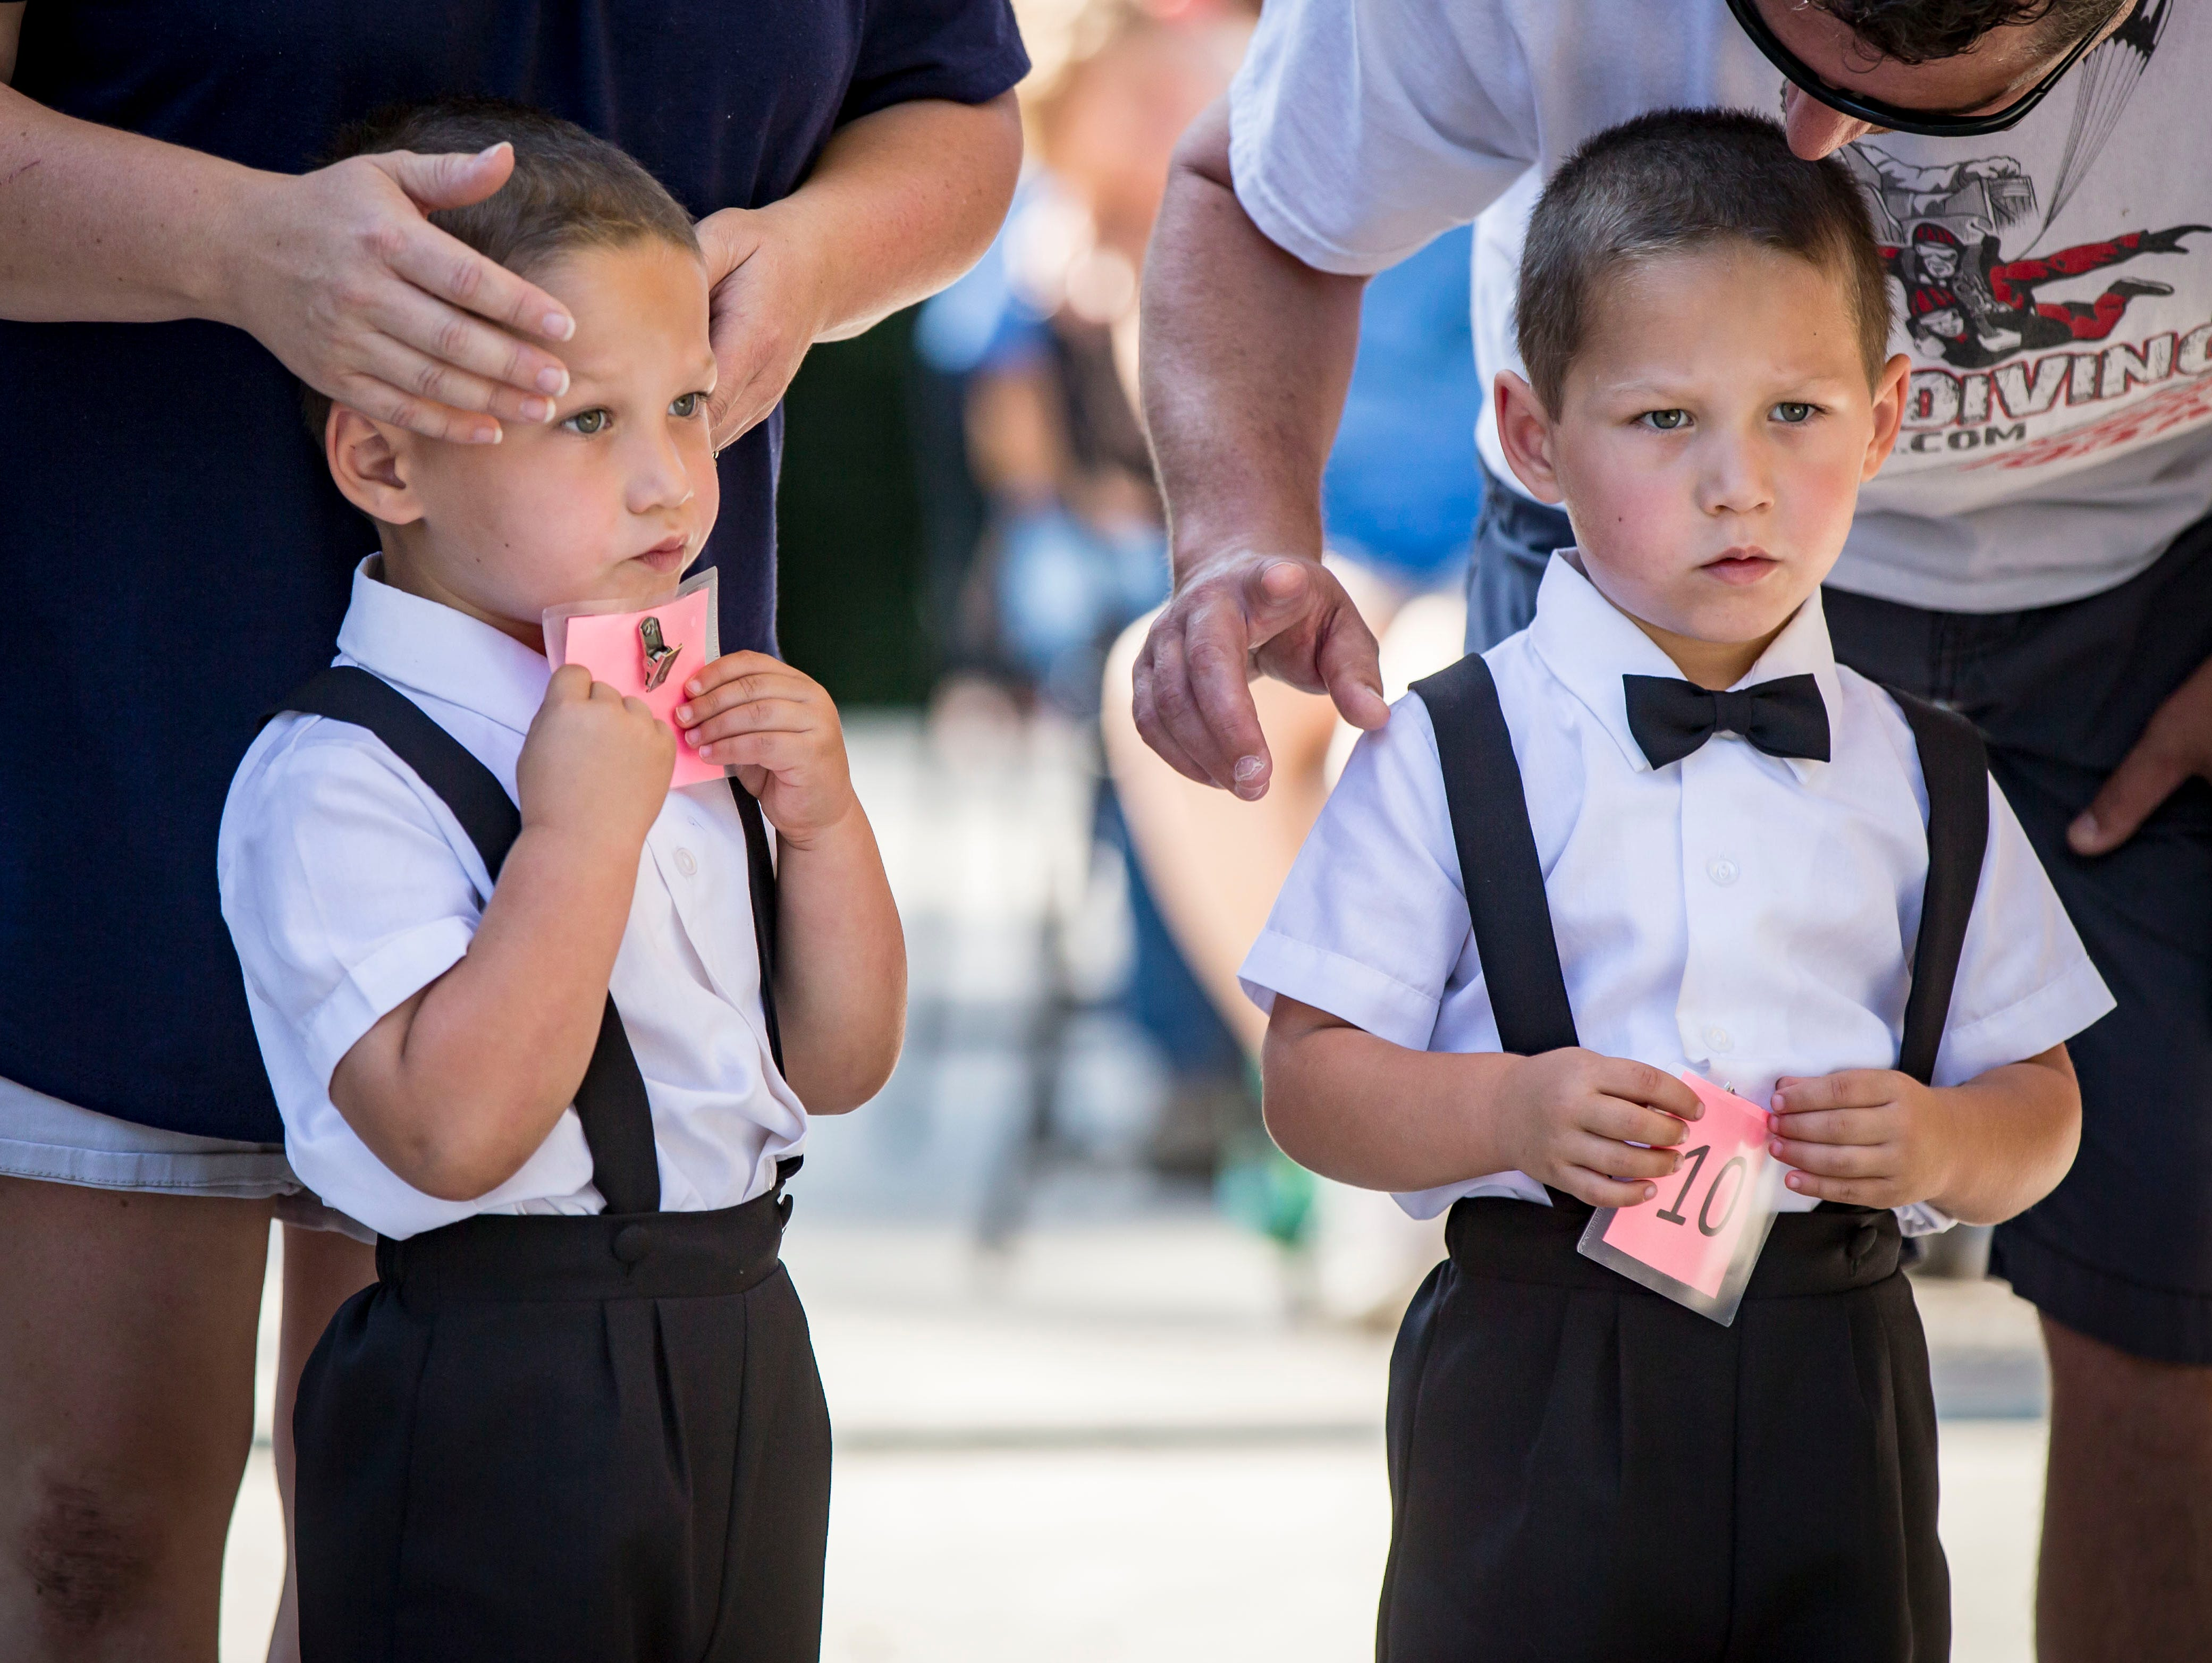 Sagan, left, and John Lack of Windsor Heights compete in the three-year-old most alike category during the Twins, Triplets and More Contest on the Anne and Bill Riley Stage at the 2018 Iowa State Fair in Des Moines Thursday, Aug. 9, 2018.